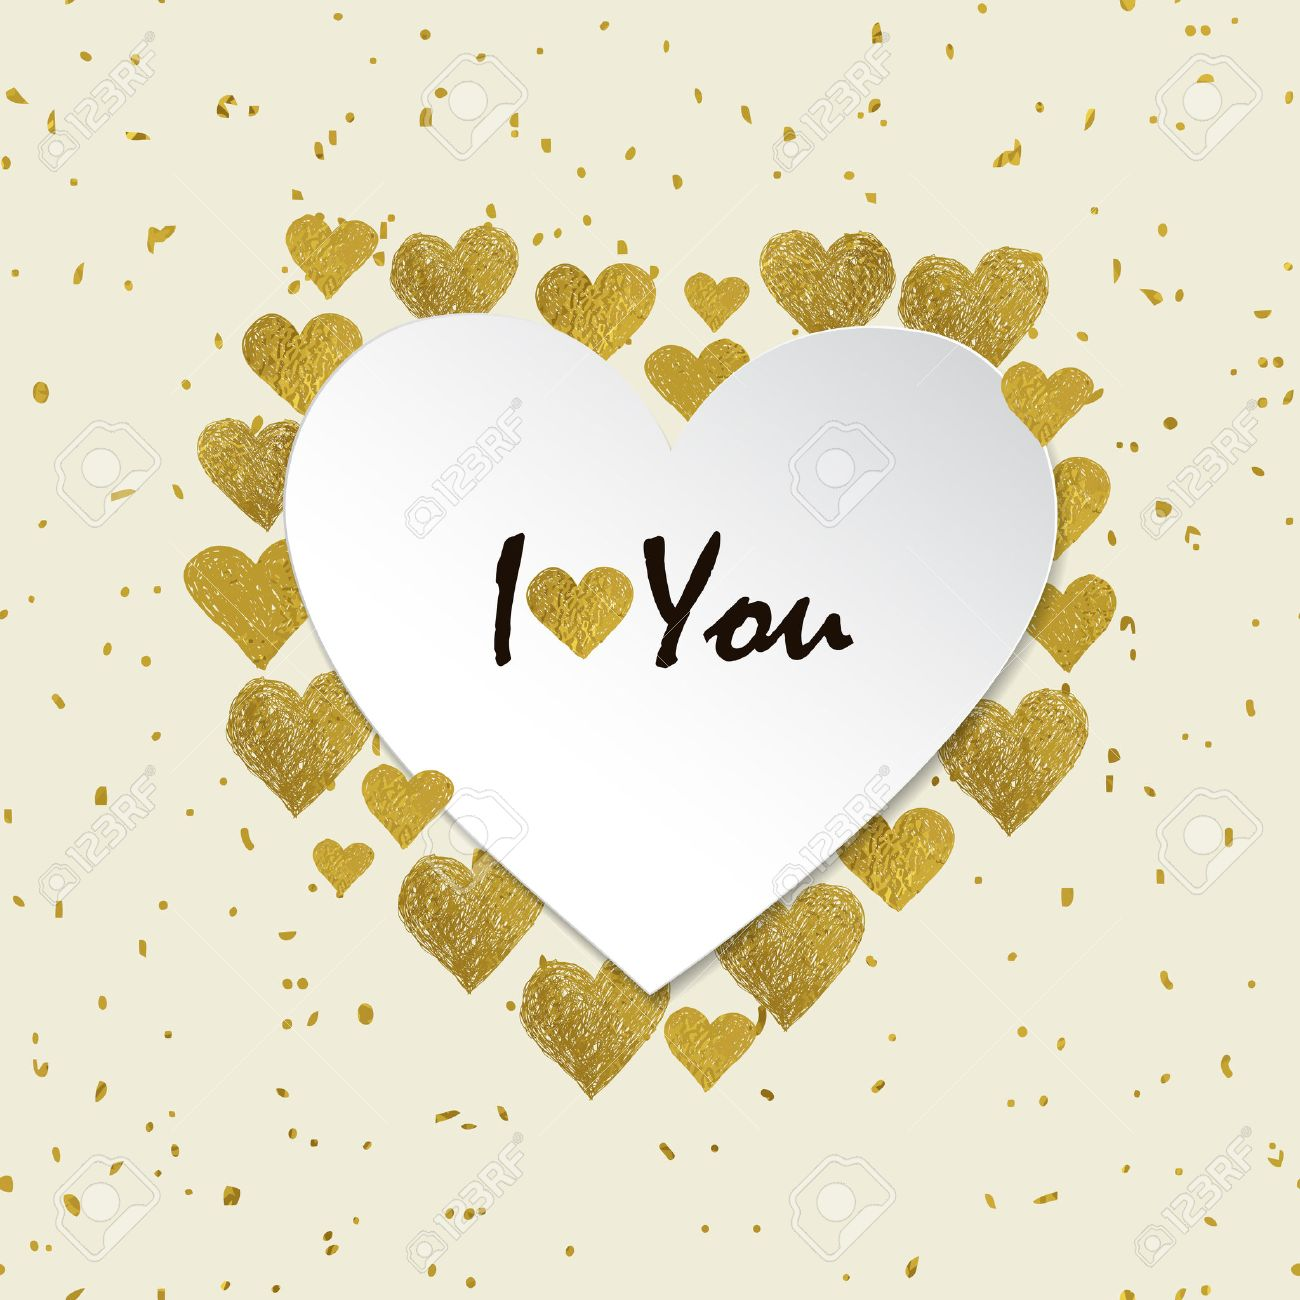 Heart Shaped Frame. Golden Foil Hearts And Place For Your Text ...